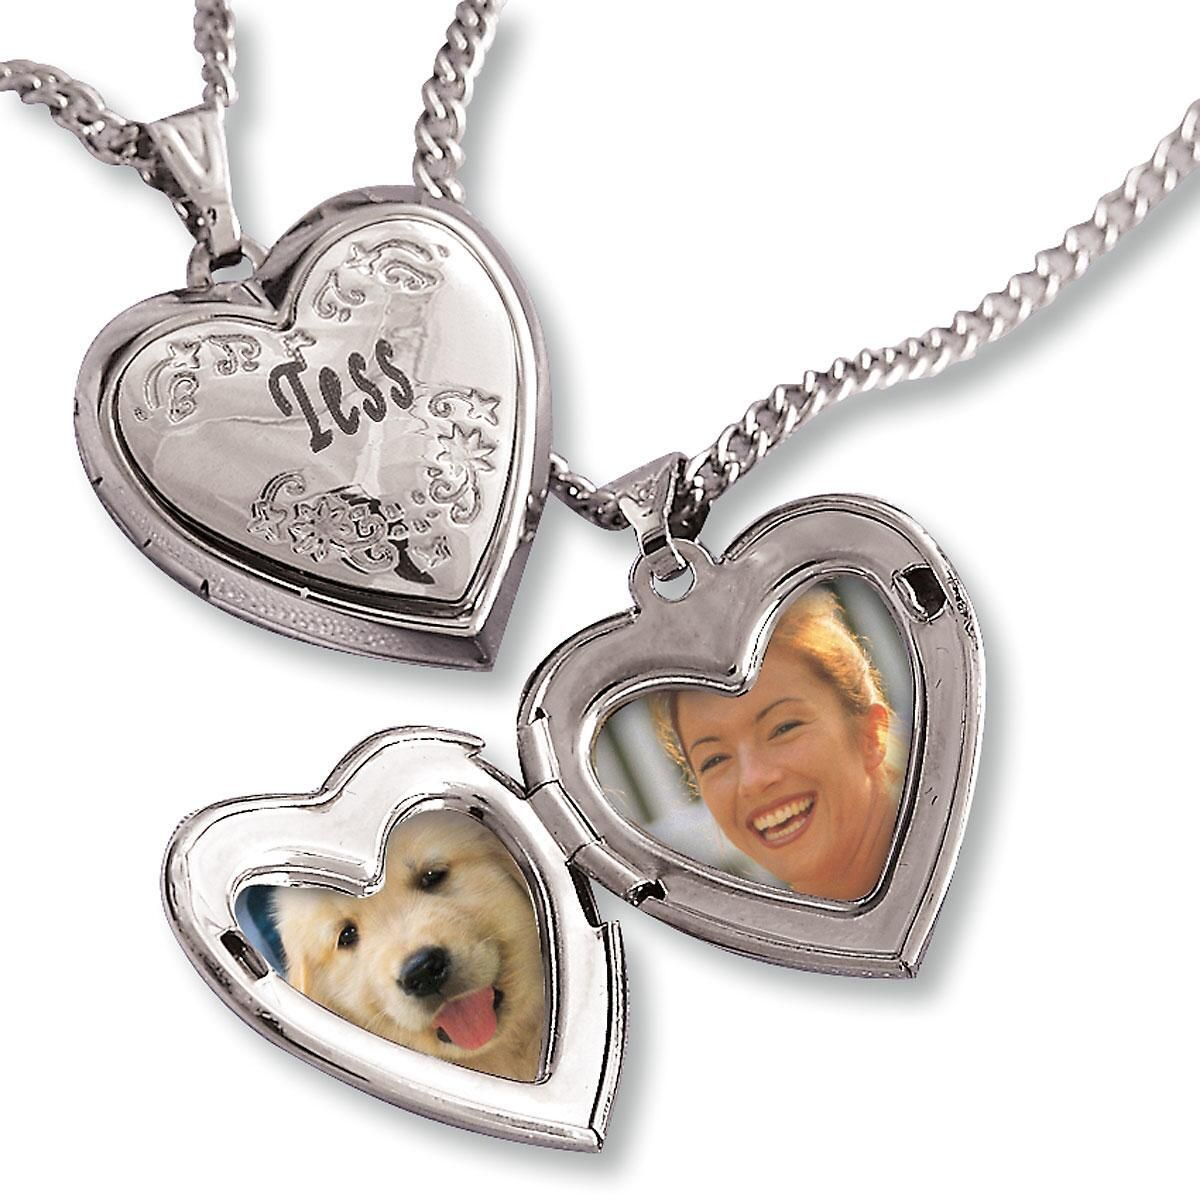 Engraved Love Locket